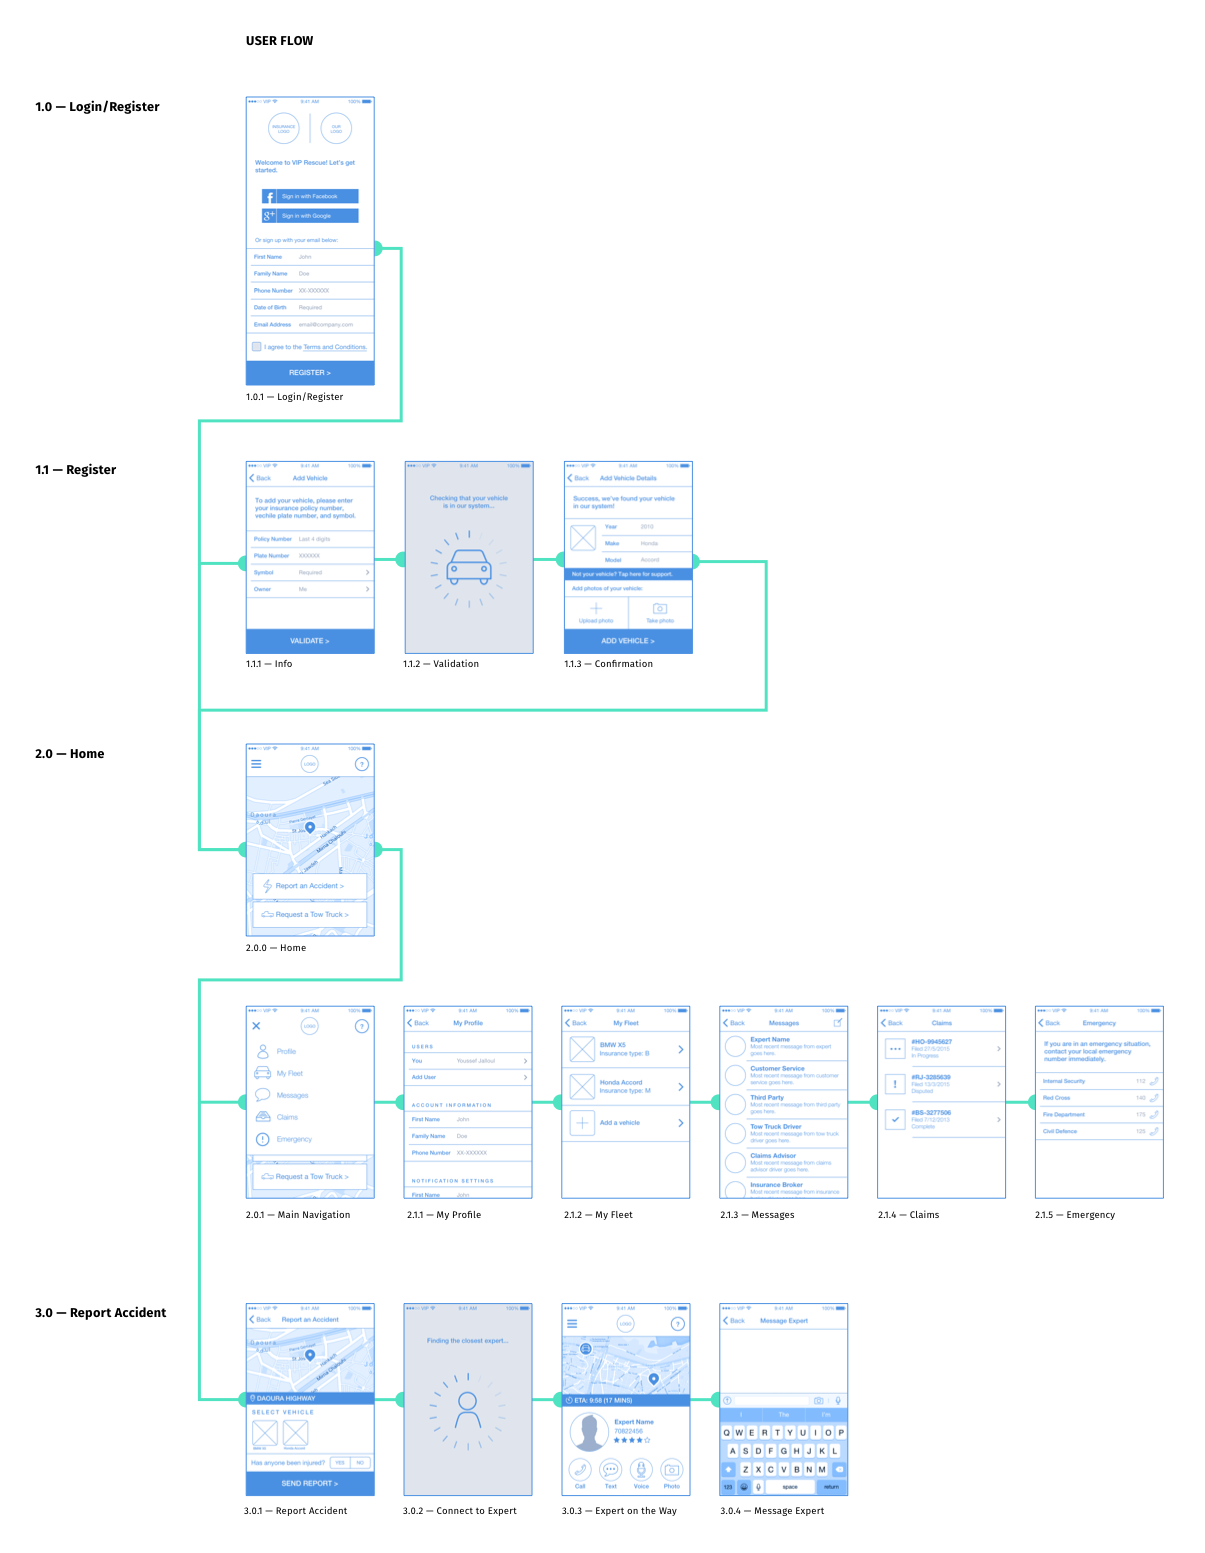 Initial wireframes of the user-facing app